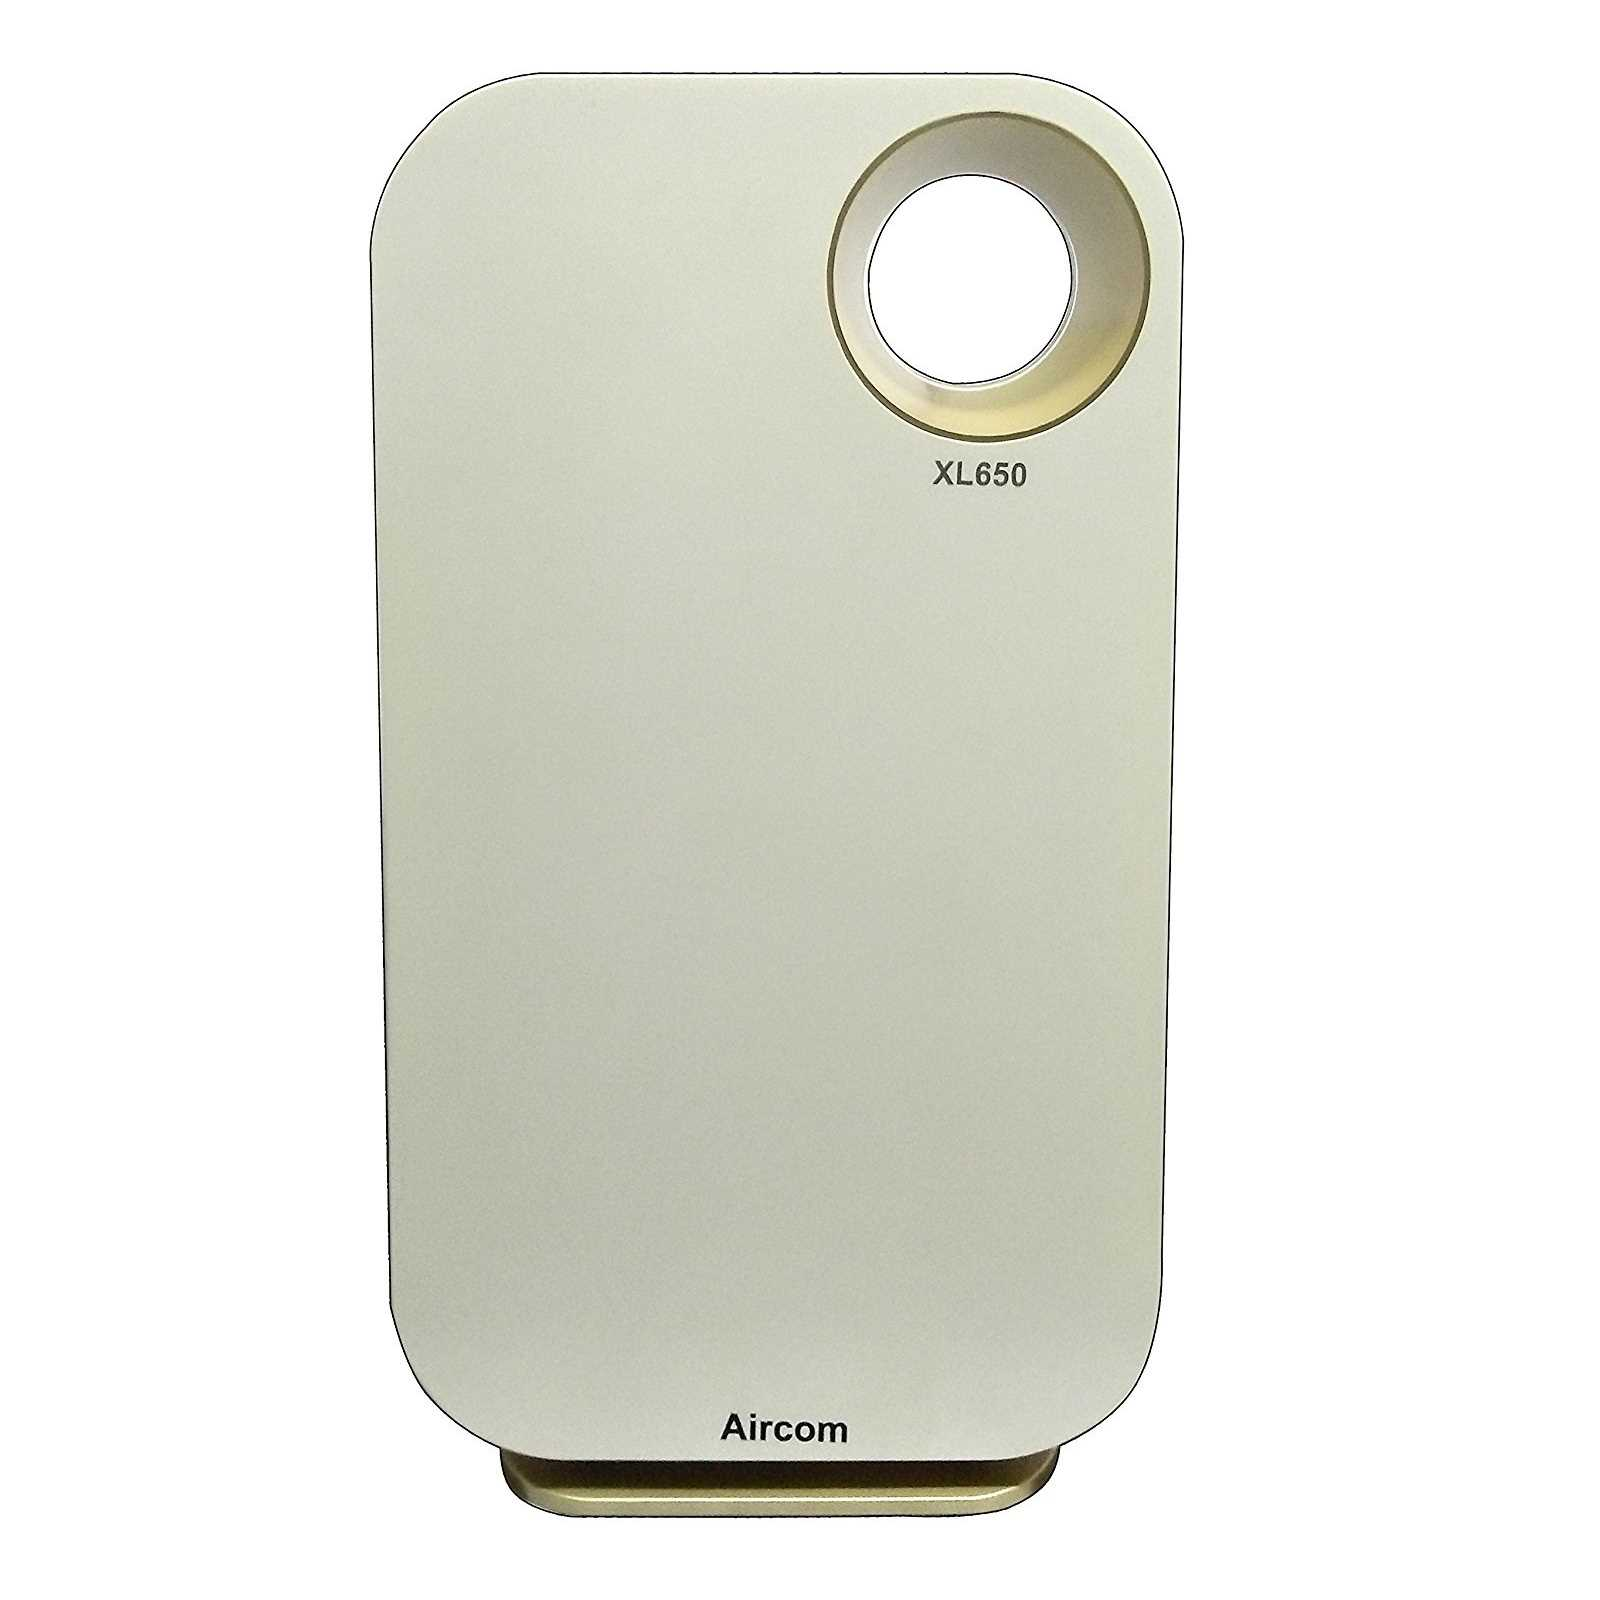 Aircom XL650 Room Air Purifier